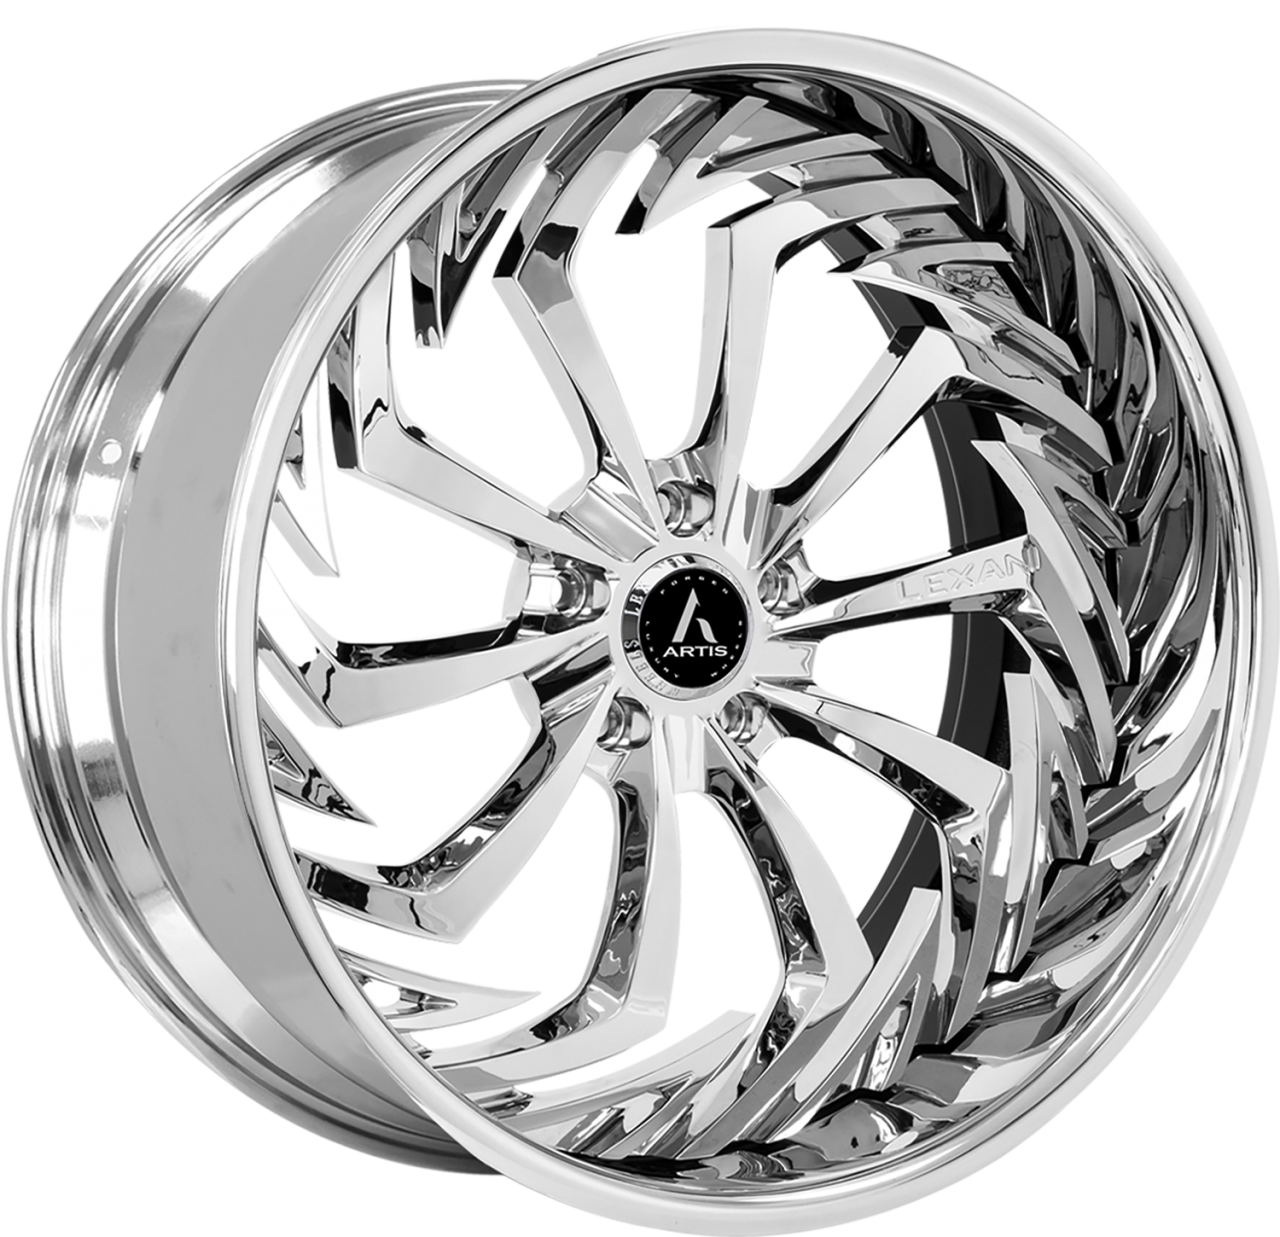 Artis Forged Royal wheel with Chrome finish